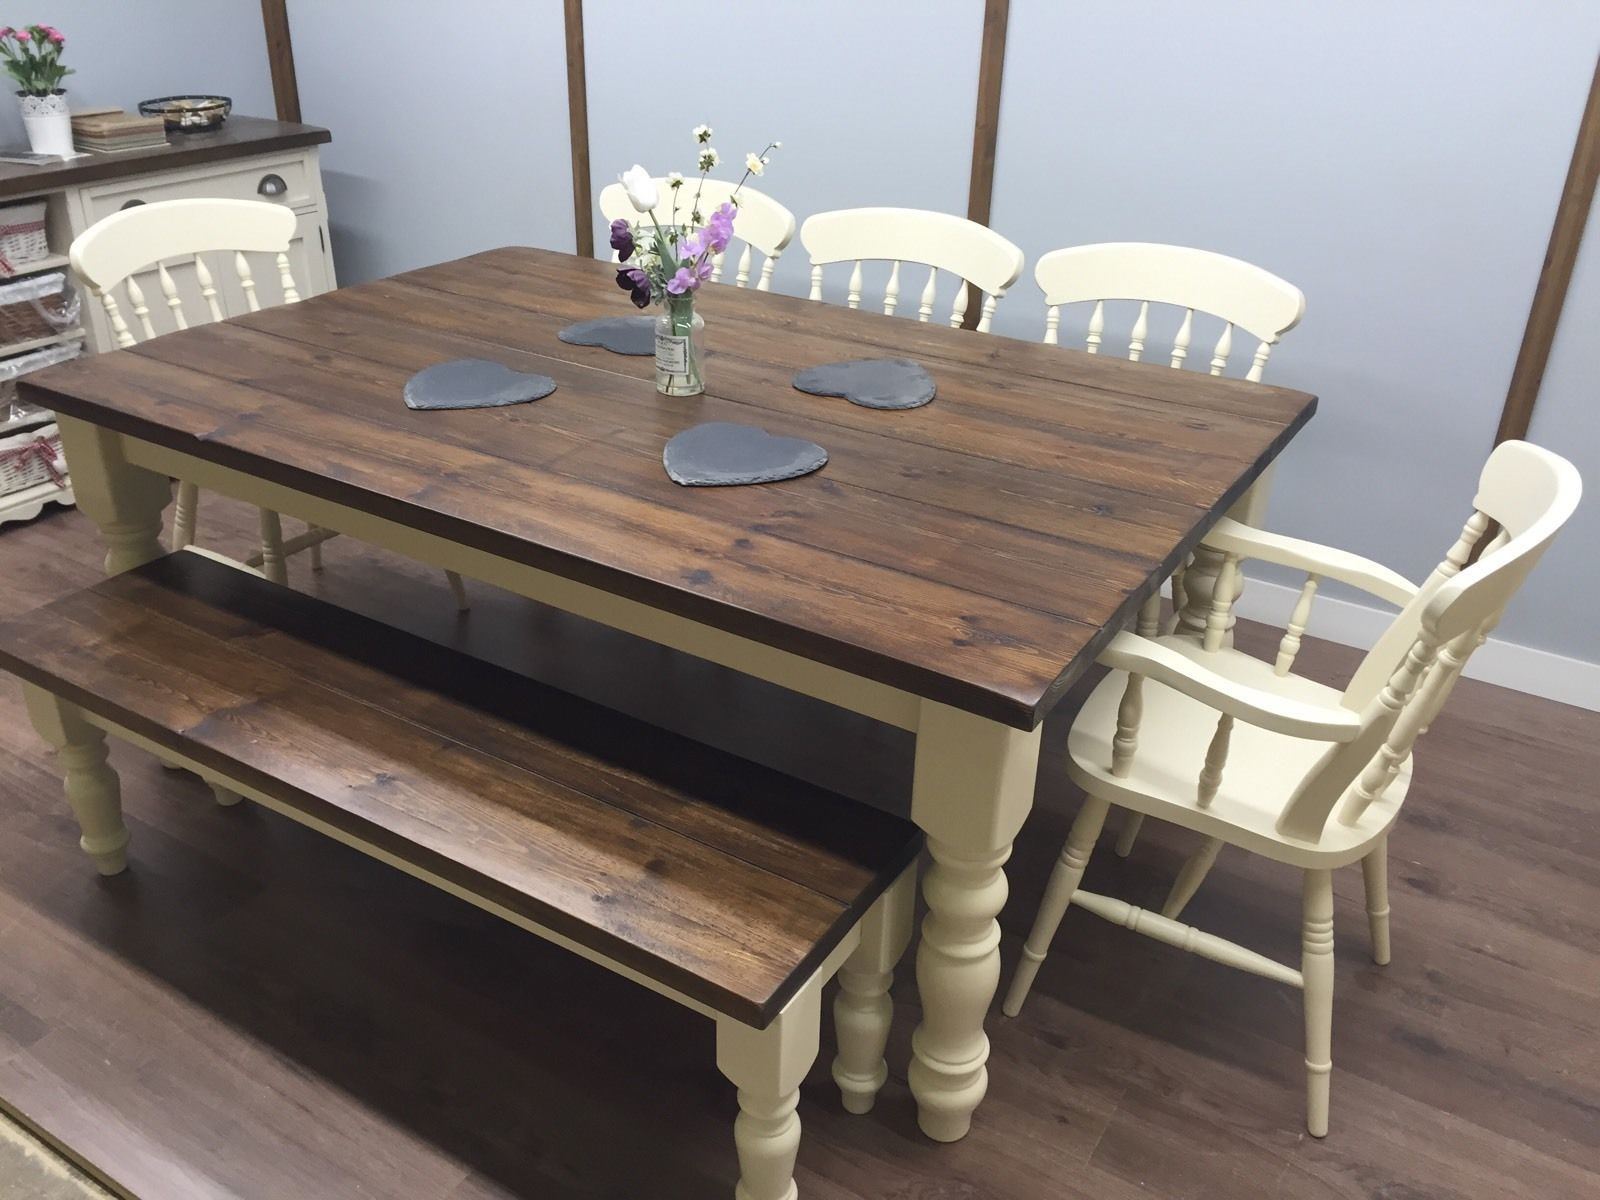 6ft X 4ft Farmhouse Table 5 Chairs Bench Rustic Oak Pine Country Rustic Kitchen Tables Dining Table Rustic Rustic Kitchen